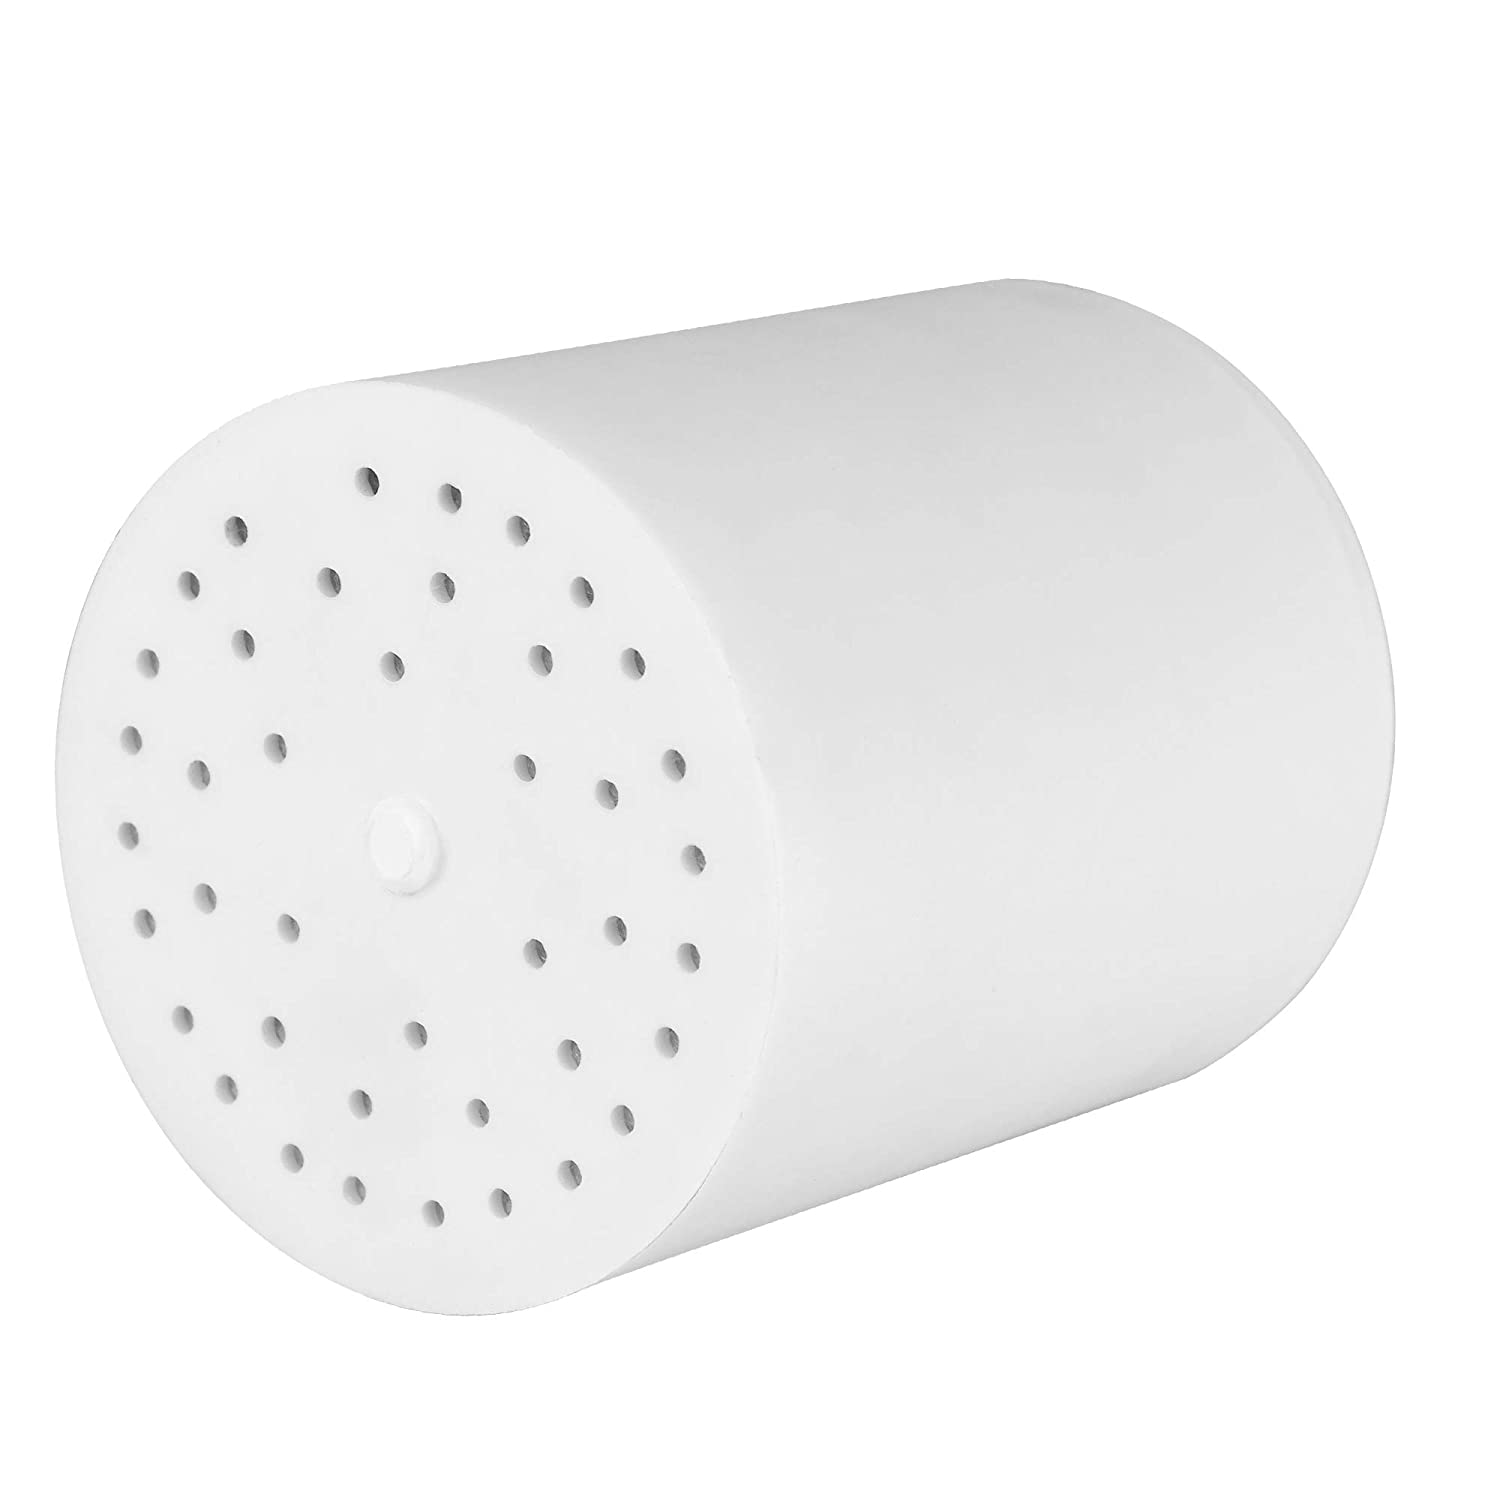 Aquatrend 15-Stage Replacement Shower Filter Cartridge, Universal Shower Filter Blocks Chlorine for Hard Water Improves the Condition of Your Skin, Hair